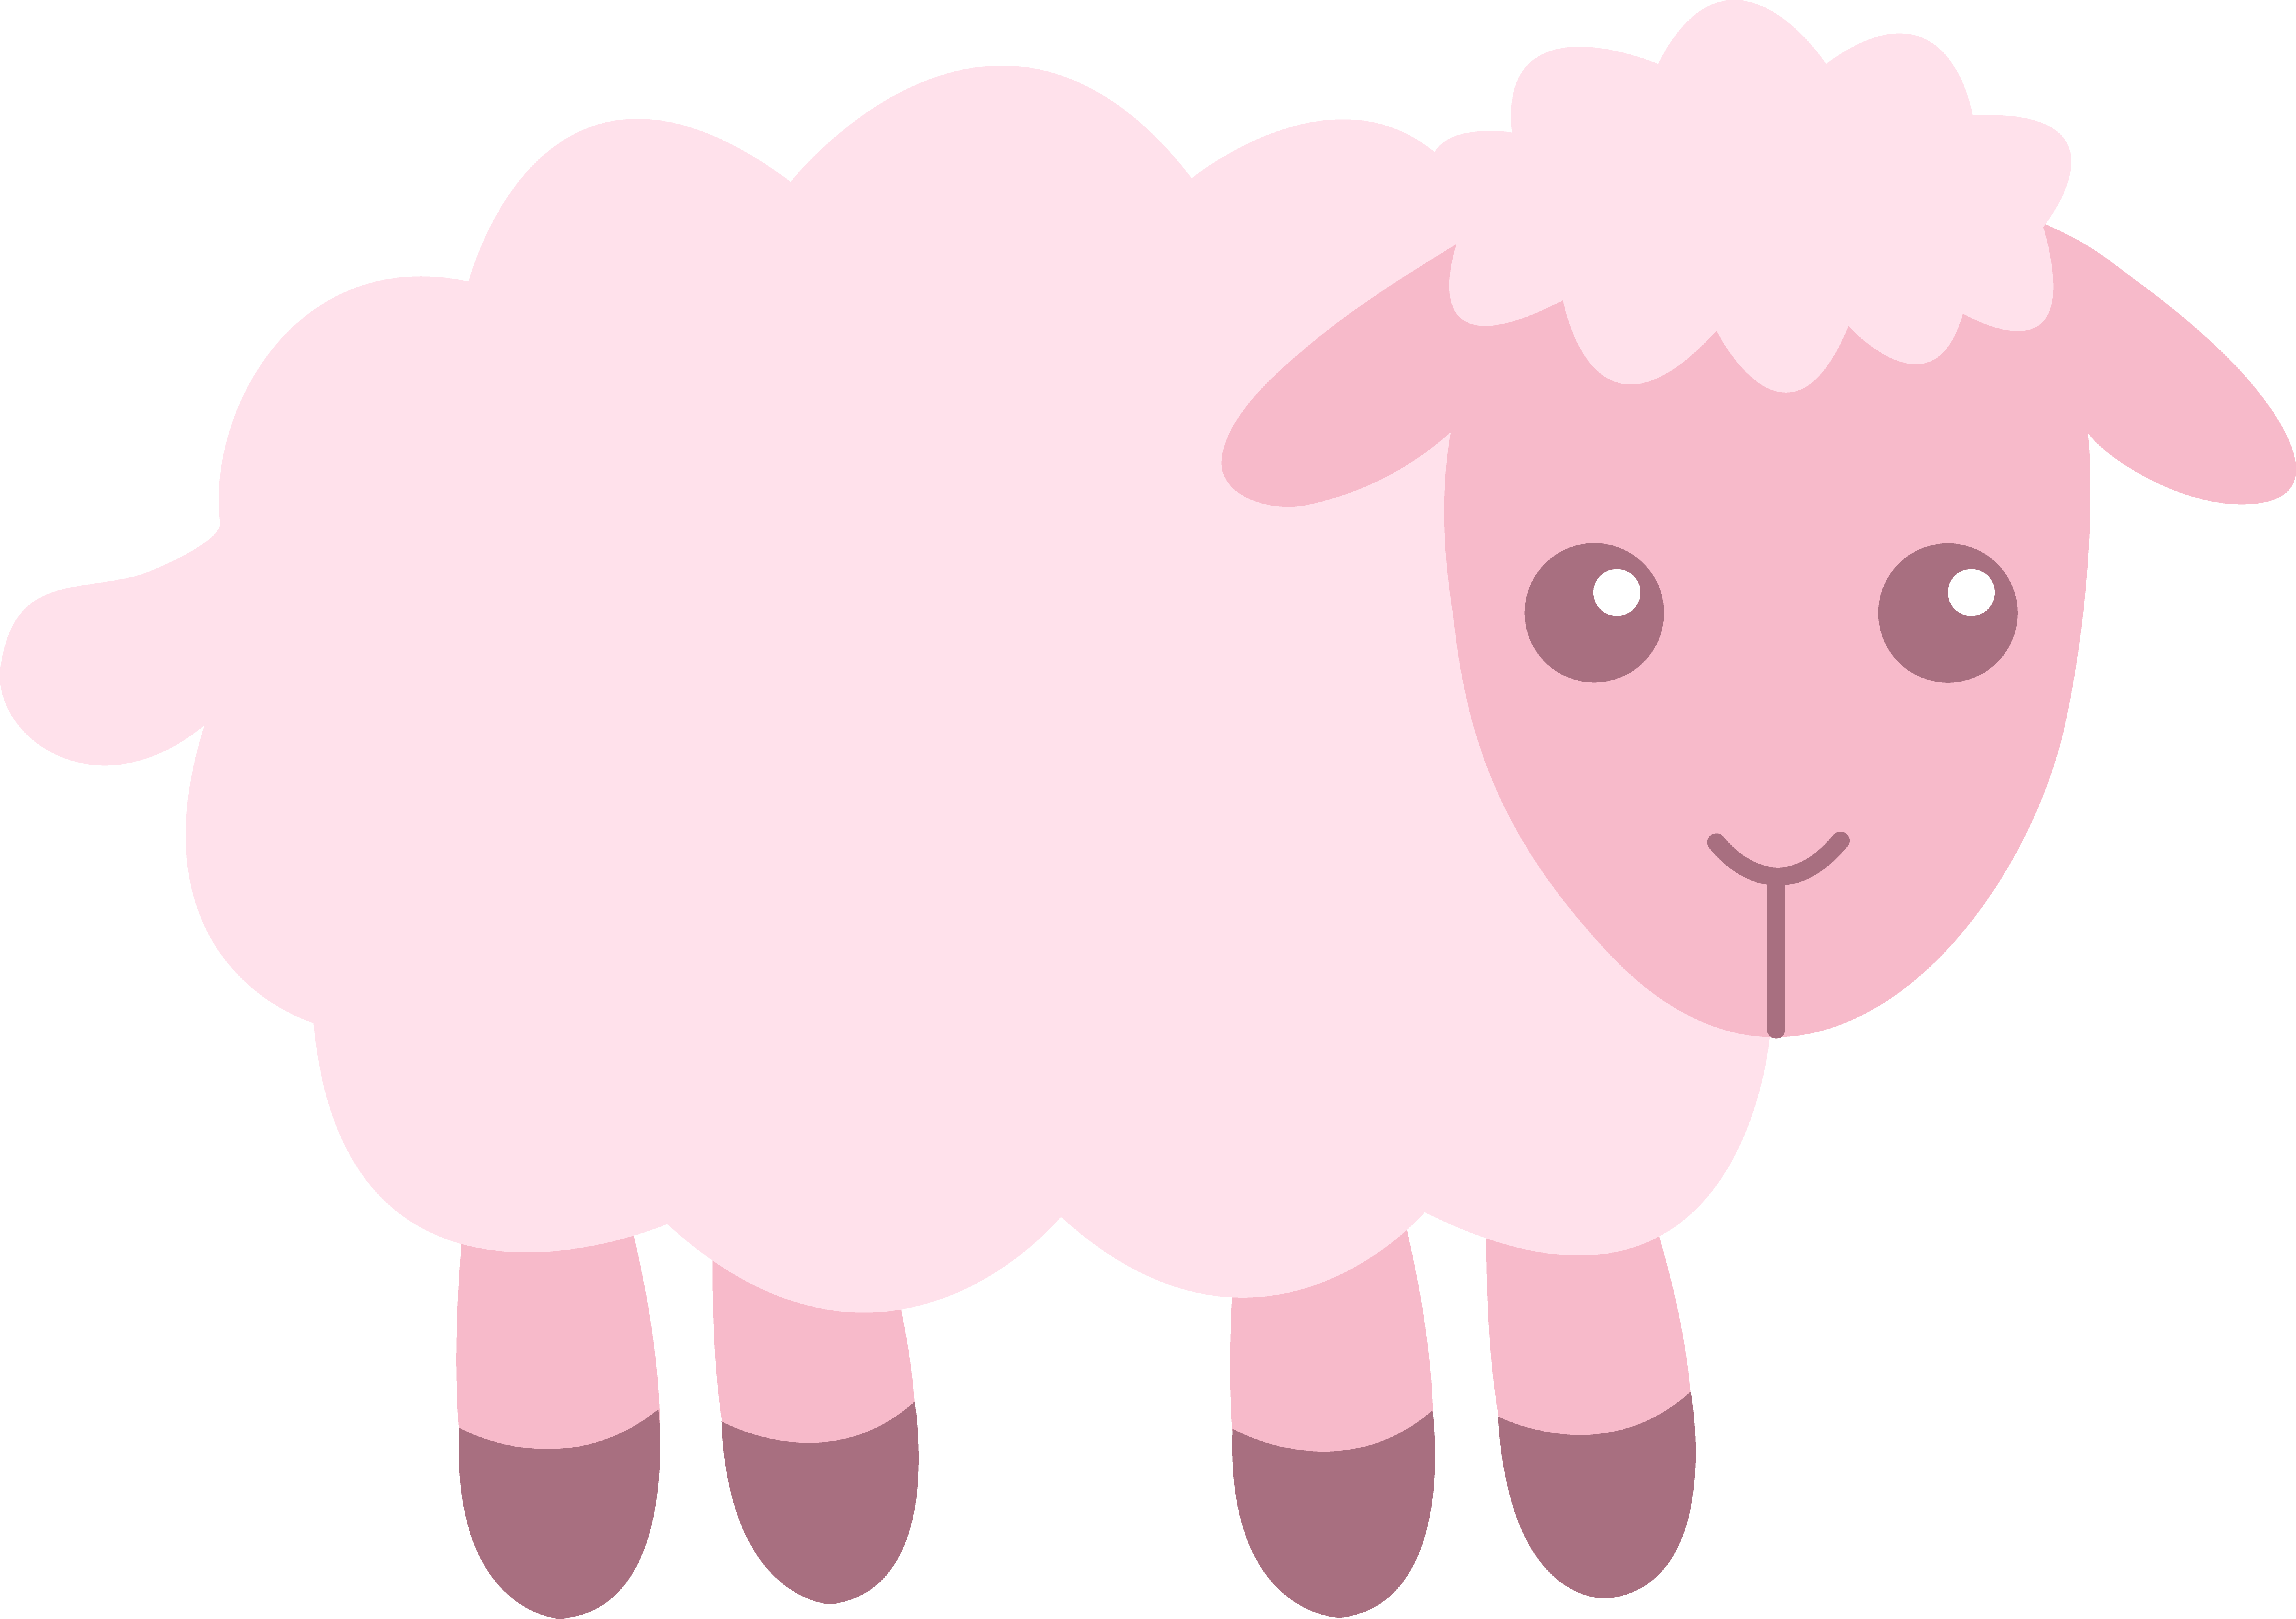 Baby shower lamb clipart banner download Free Baby Sheep Cliparts, Download Free Clip Art, Free Clip Art on ... banner download